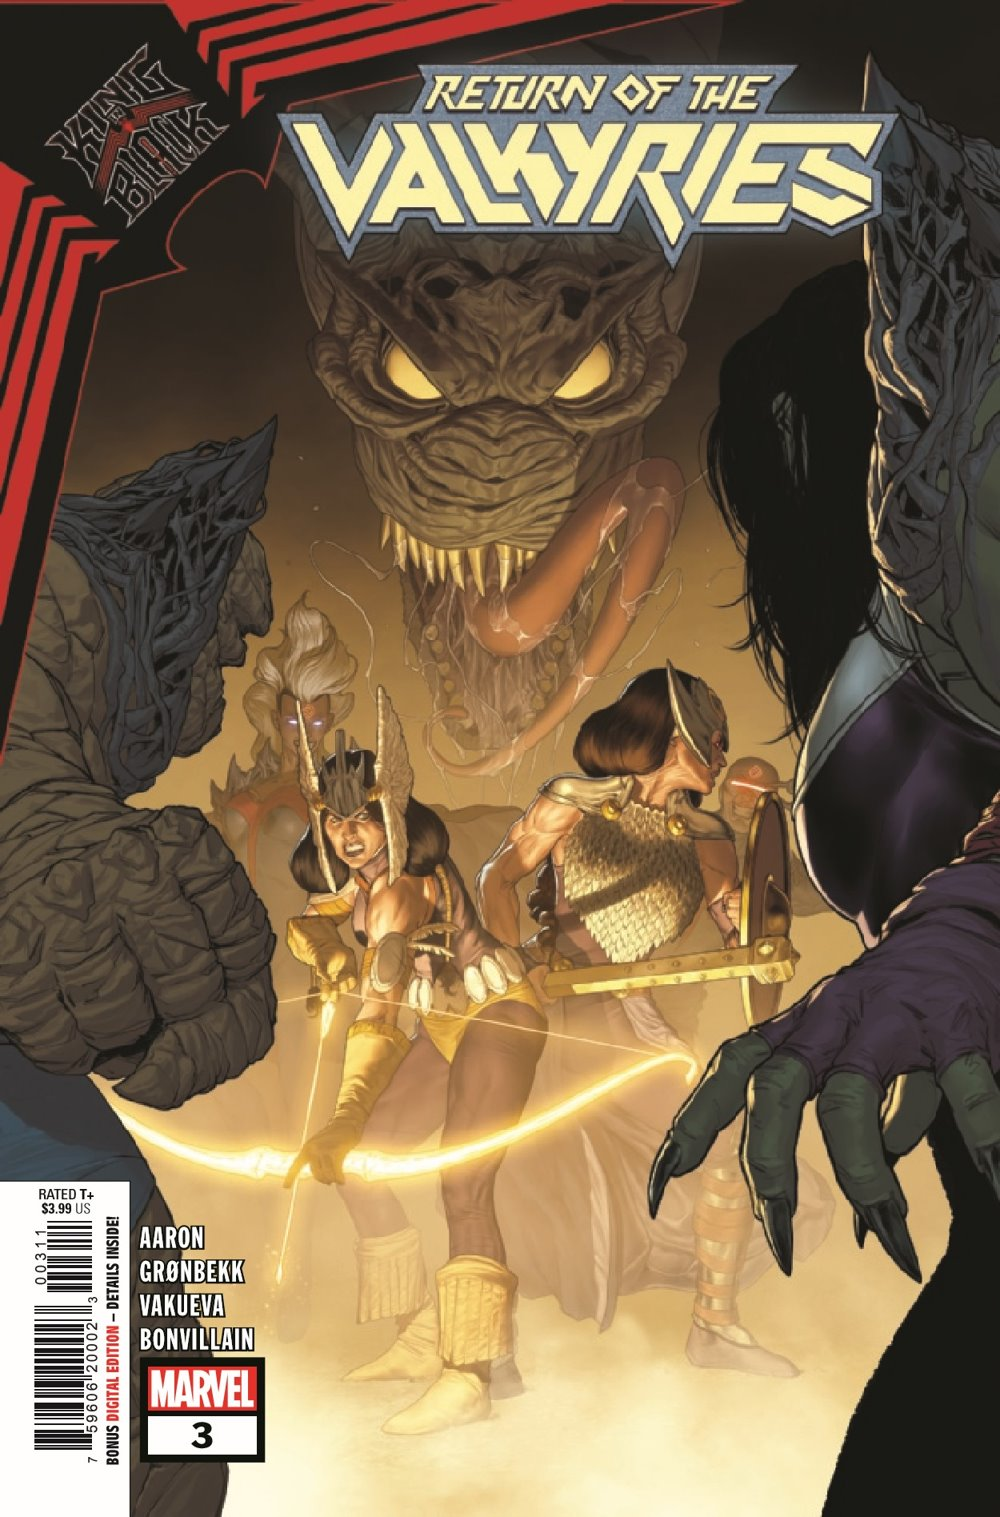 KIBVALKYRIESRET2021003_Preview-1 ComicList Previews: KING IN BLACK RETURN OF THE VALKYRIES #3 (OF 4)